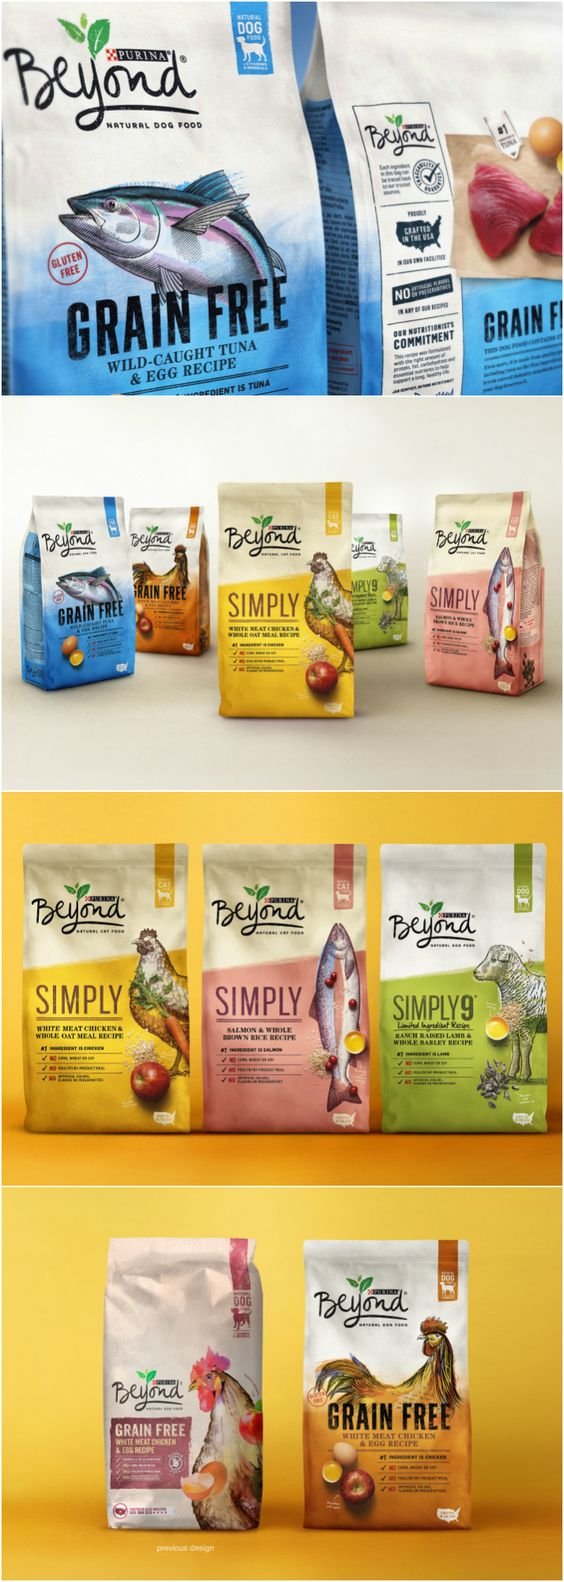 CBA Re-Design Purina 'Beyond' to Secure its Place as the Leader in Natural Pet Food